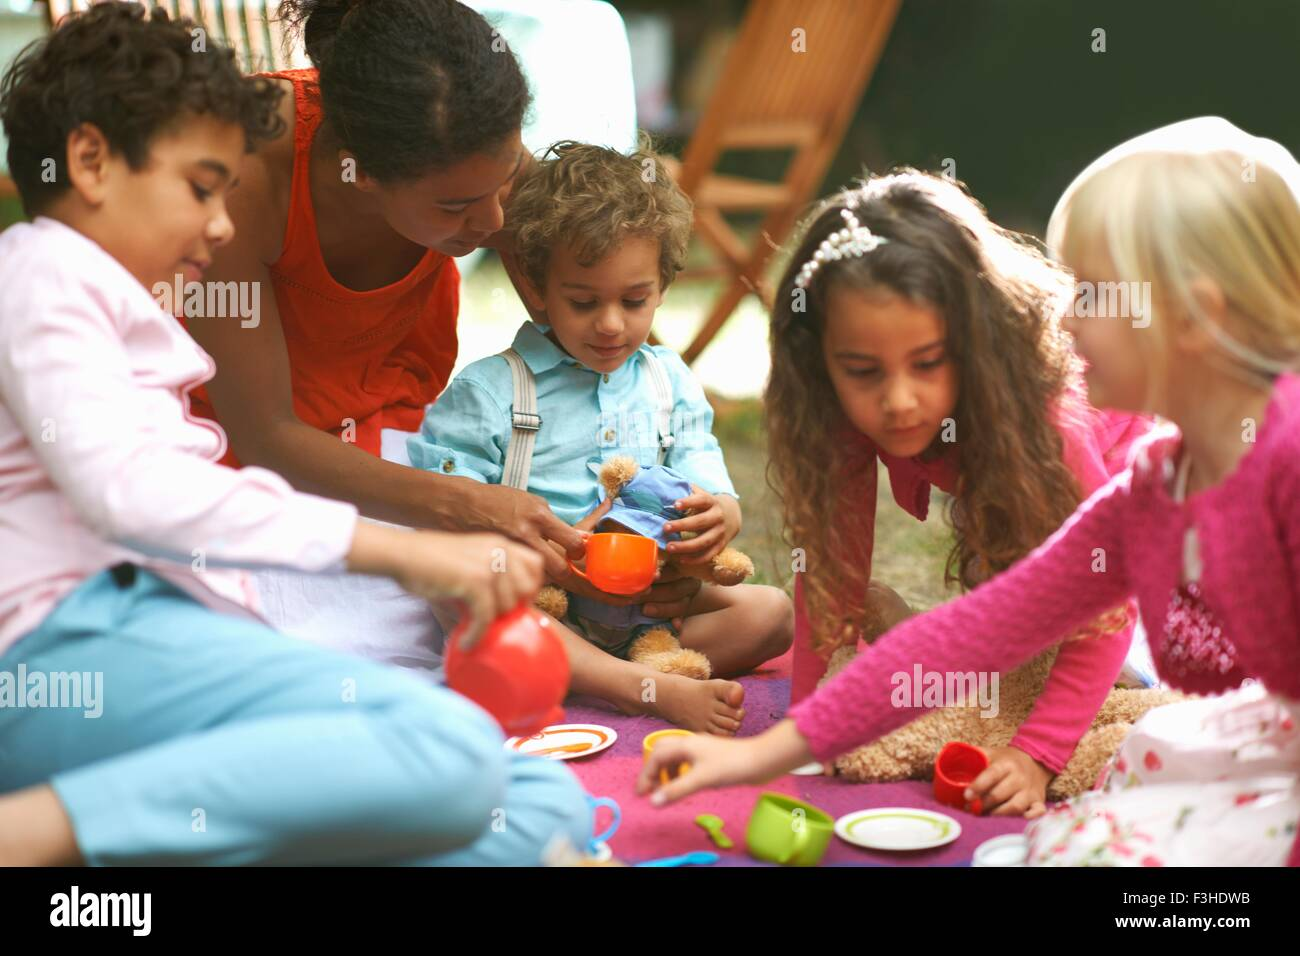 Mother and four children playing picnics at garden birthday party Stock Photo